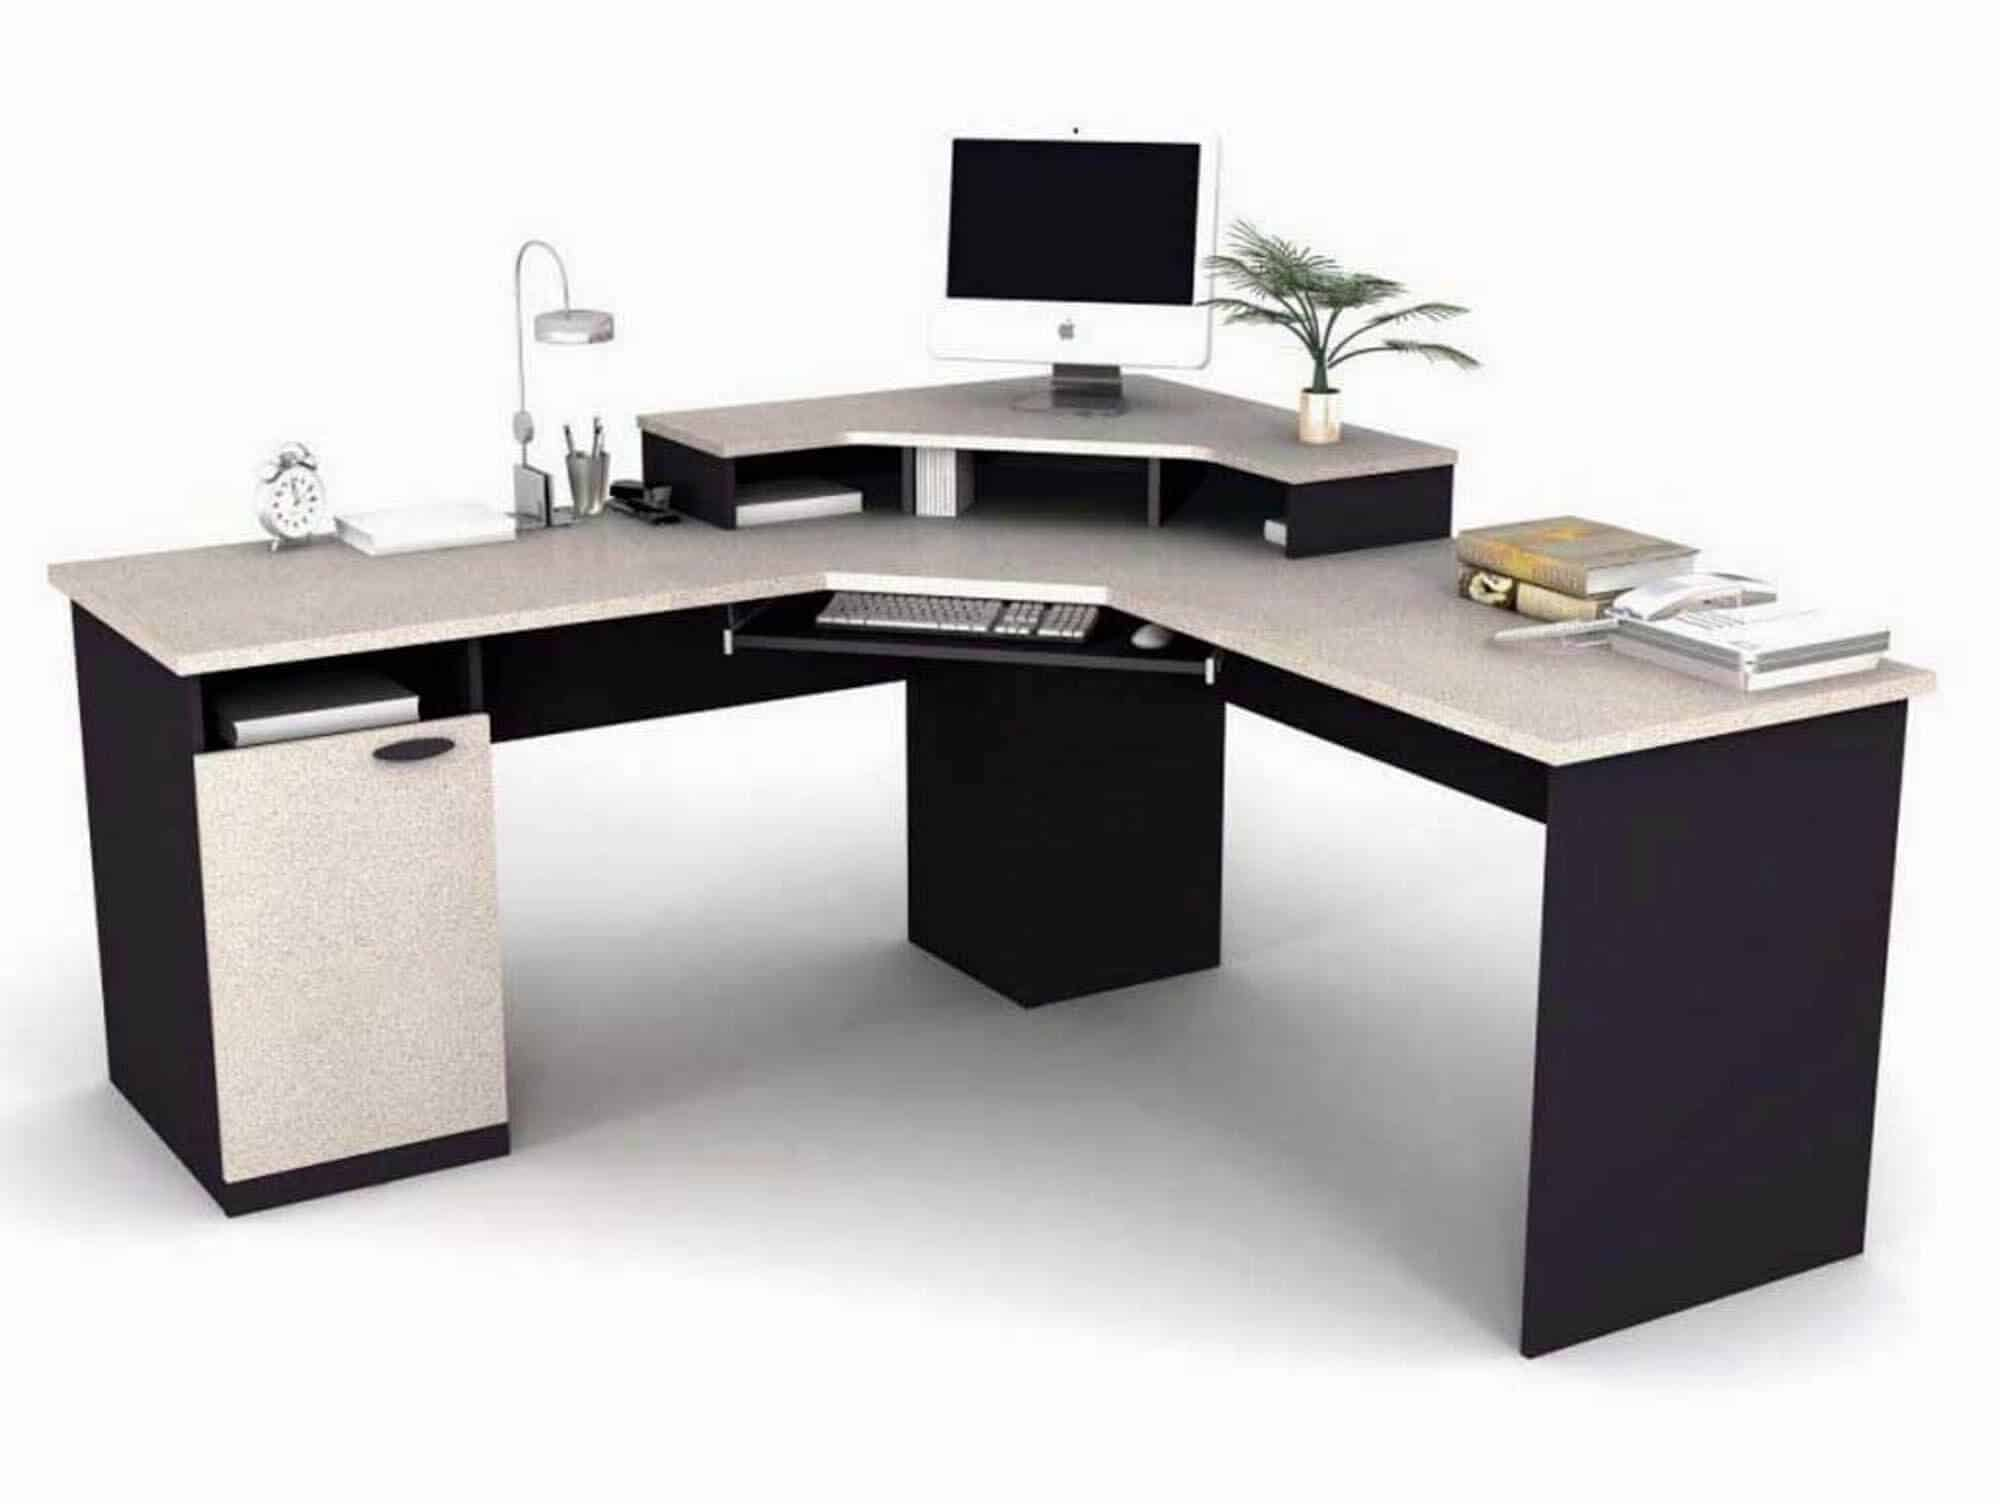 Best Office Desks the office desk guide — gentleman's gazette